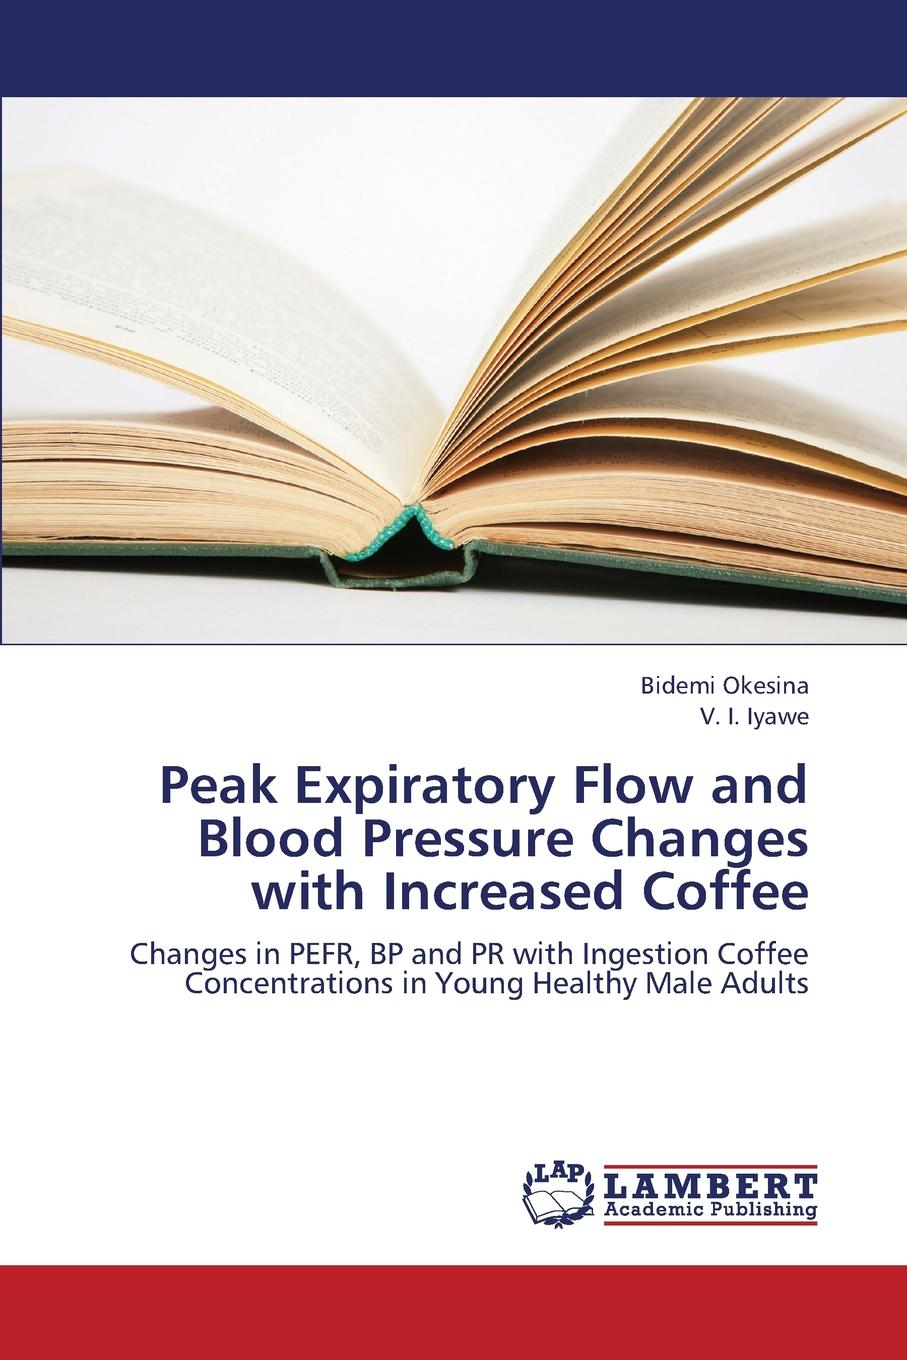 Okesina Bidemi, Iyawe V. I. Peak Expiratory Flow and Blood Pressure Changes with Increased Coffee role of coffee companies in promoting coffee smallholders in arusha